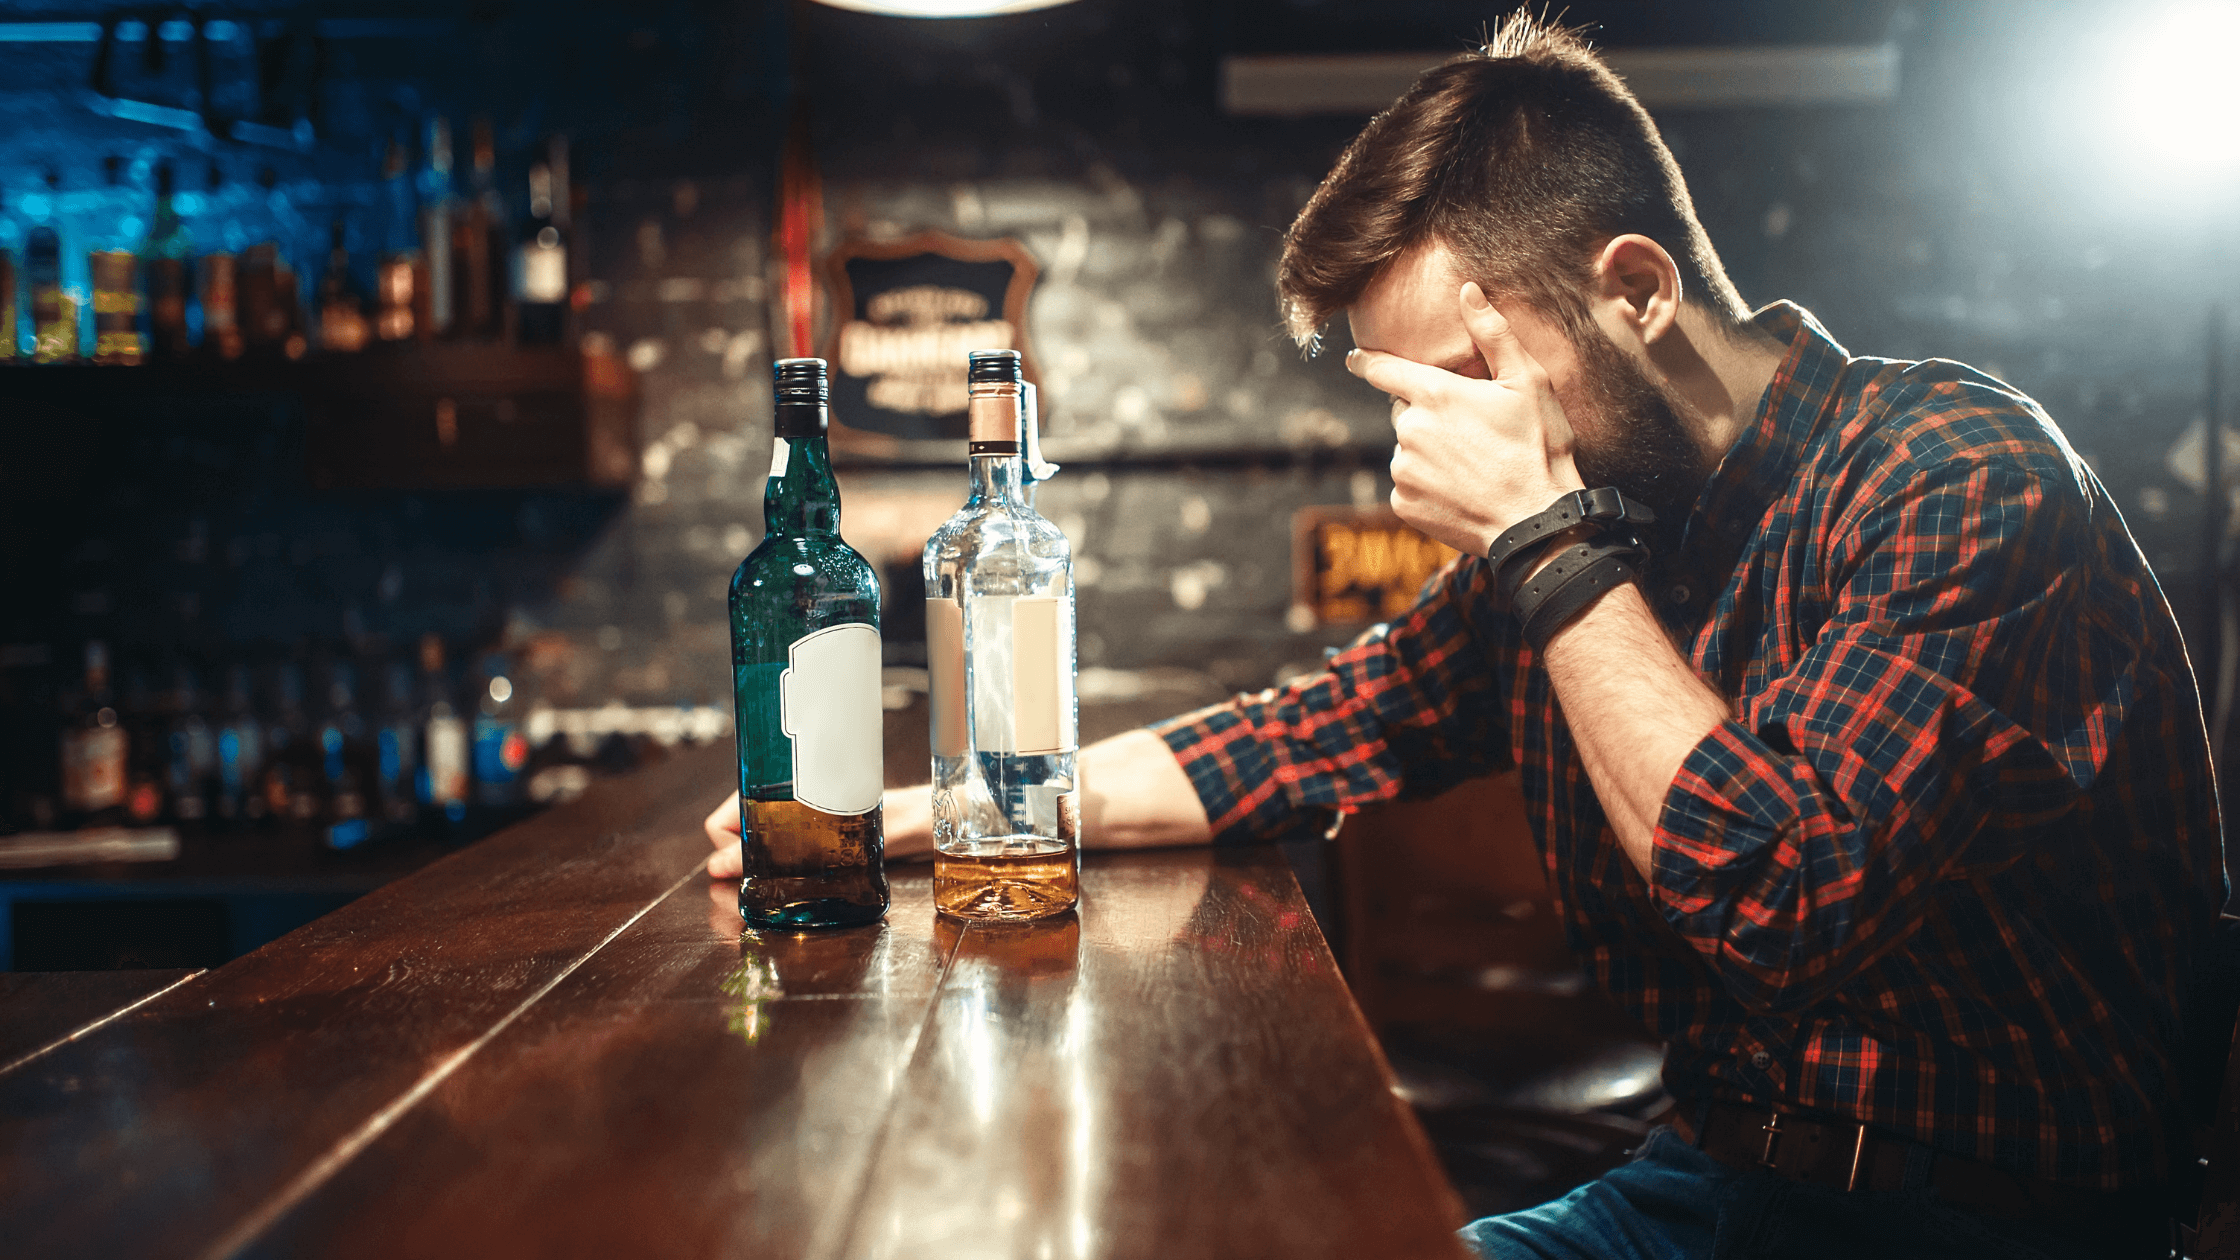 Affinity Health On The Dangers Of Binge Drinking: What Are The Health Risks?